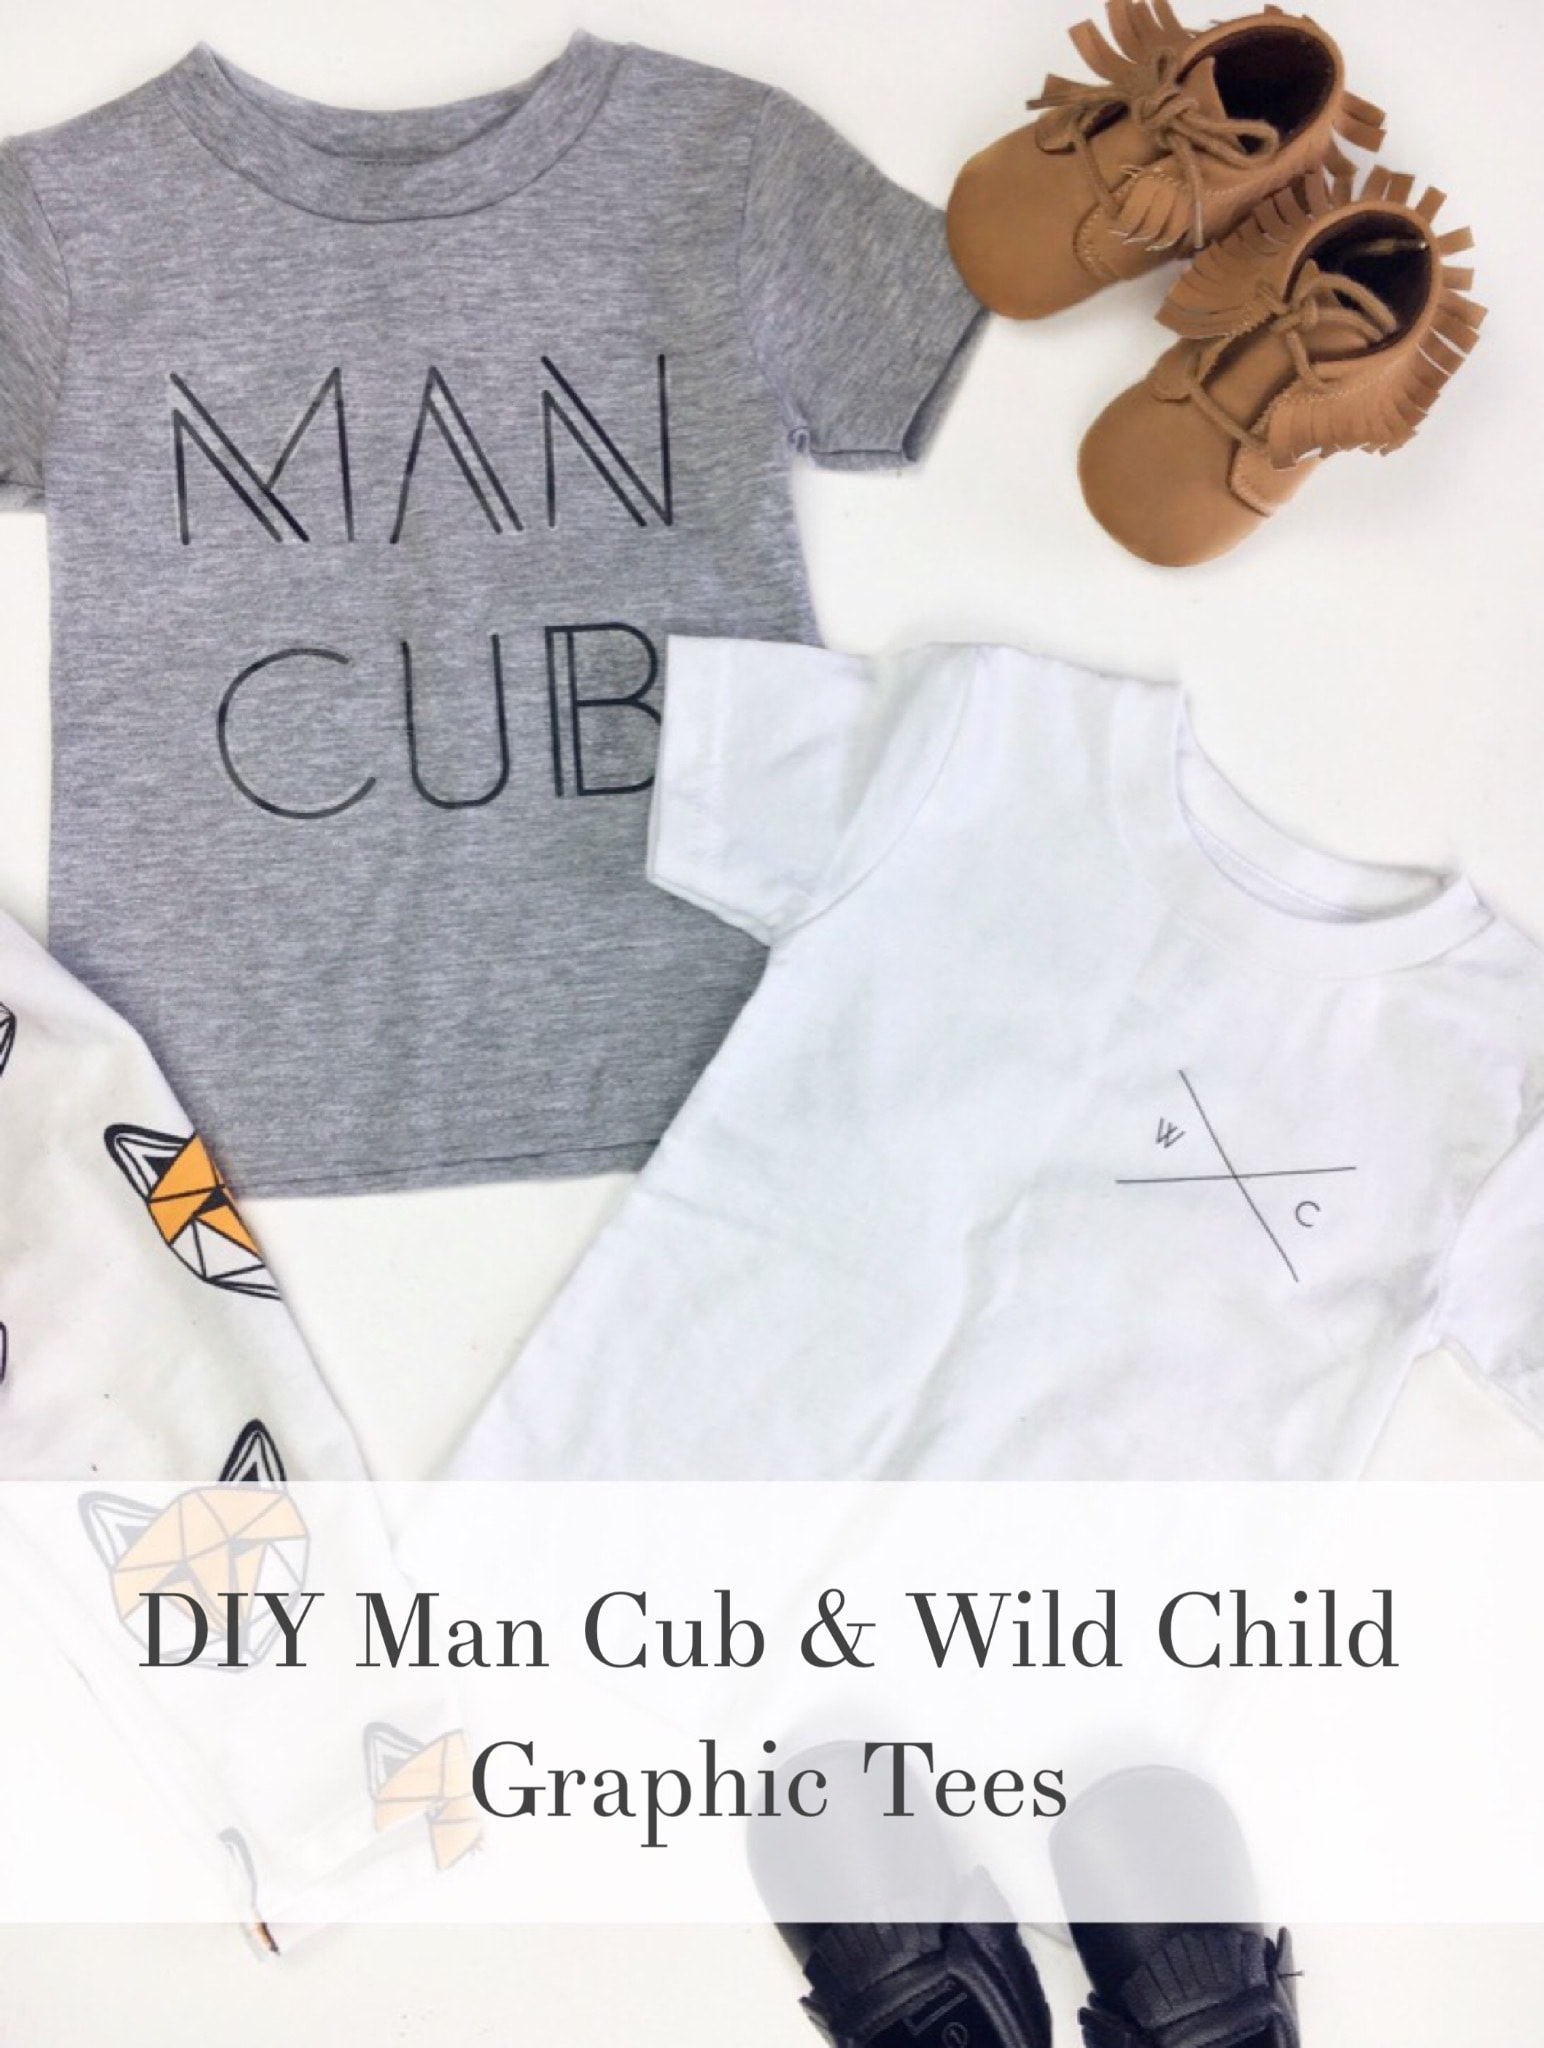 DIY Man Cub & Wild Child Graphic Tees w/ Free Printable Graphics